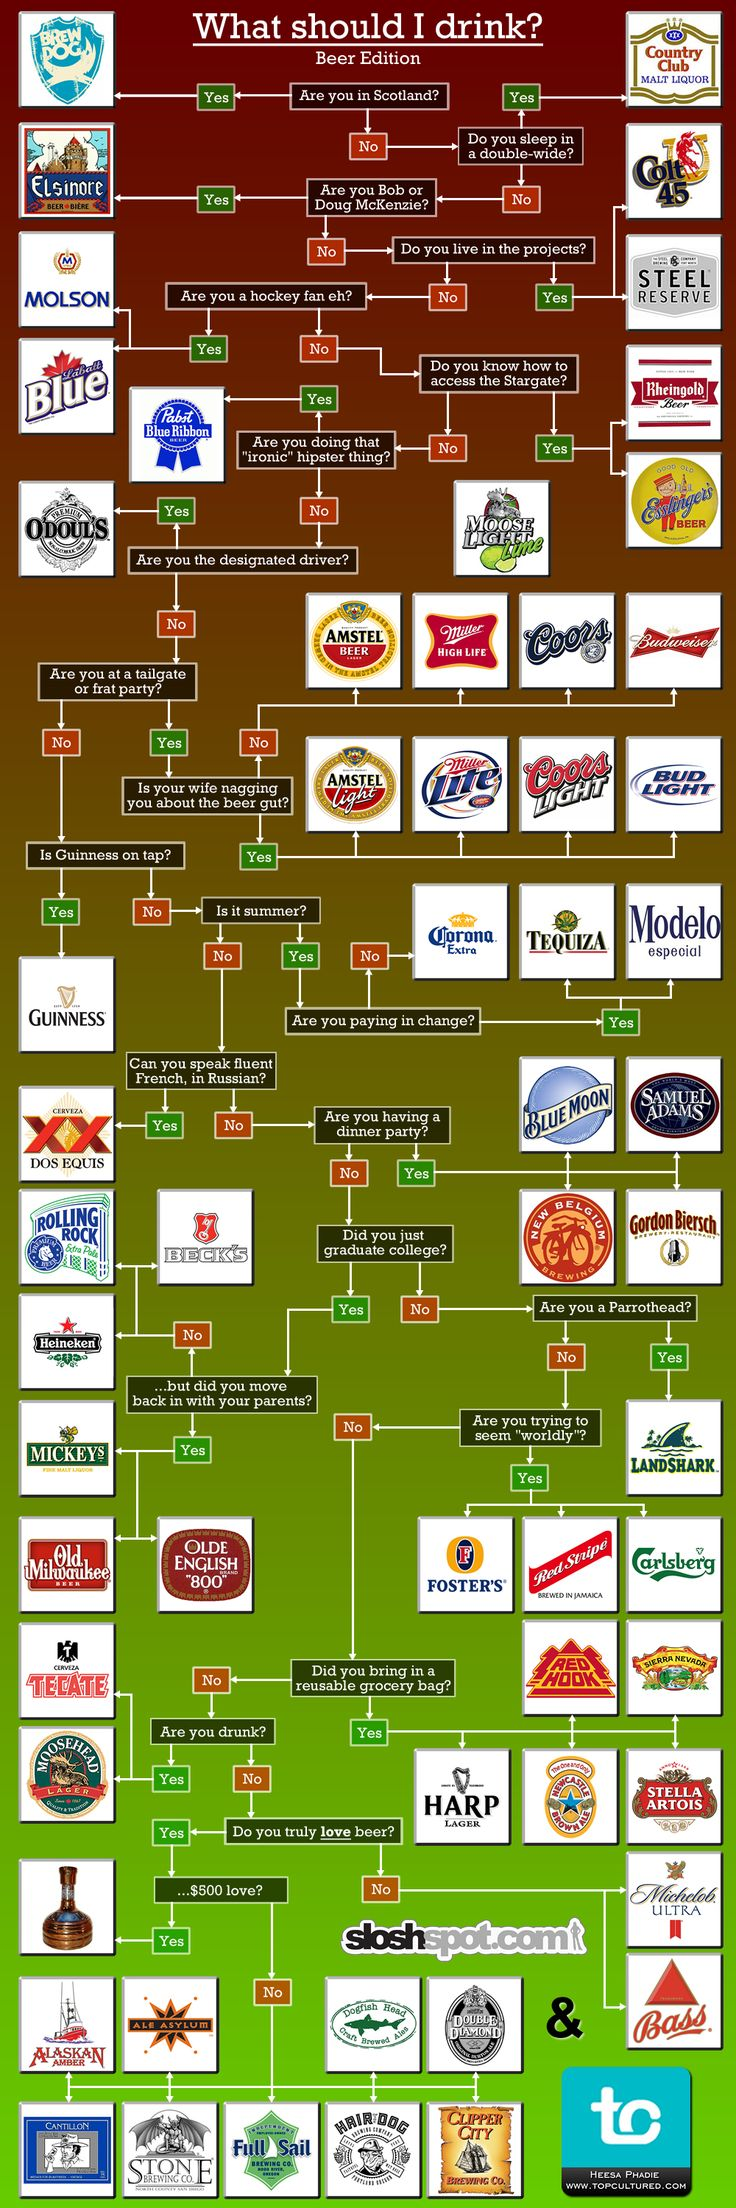 Which Beer Should I Drink?